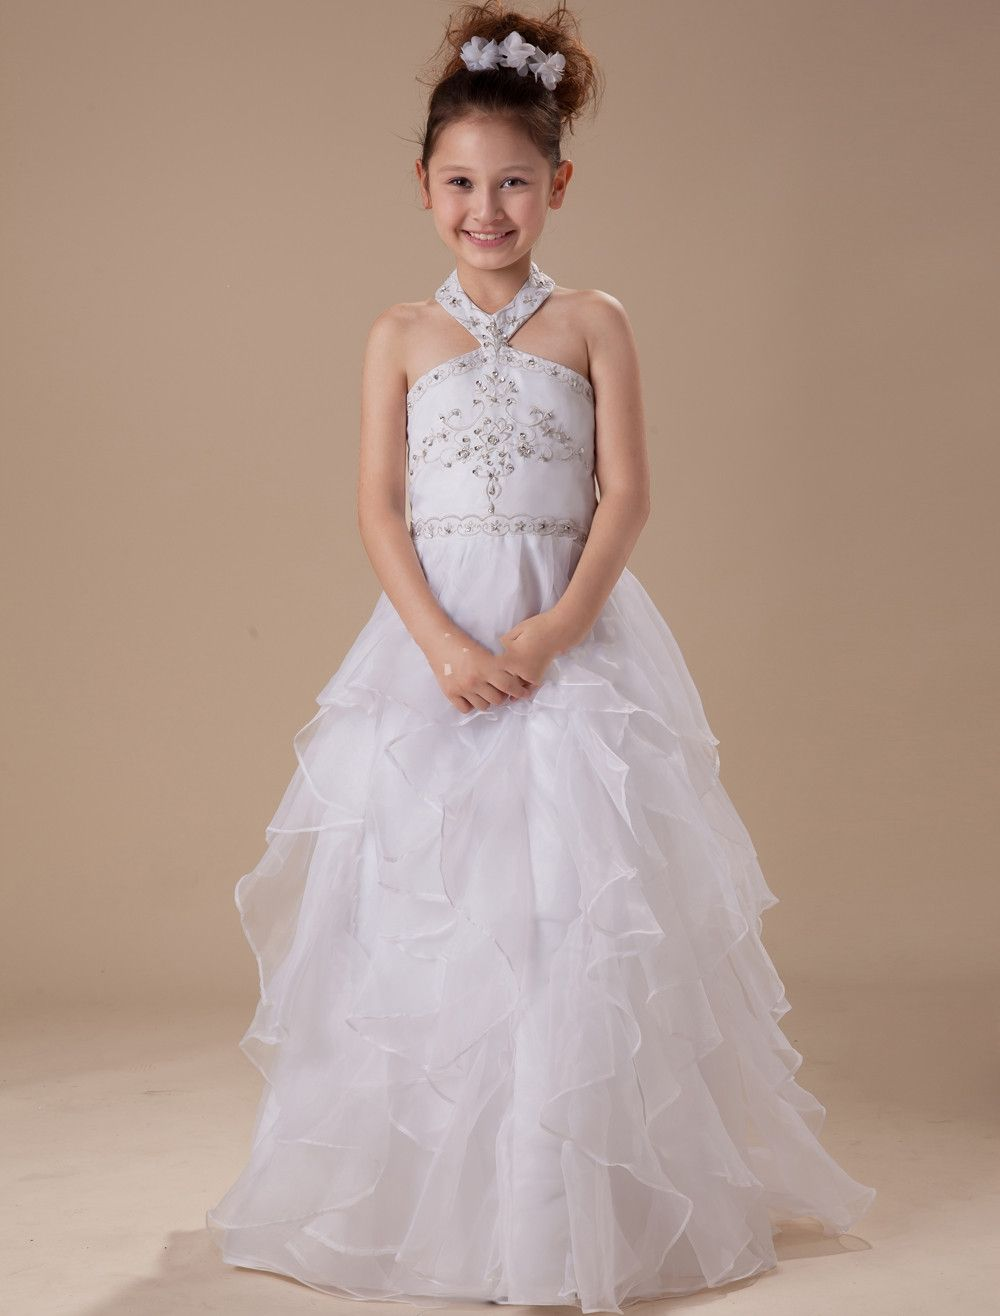 Hater organza satin white kid dresses for wedding flower girl